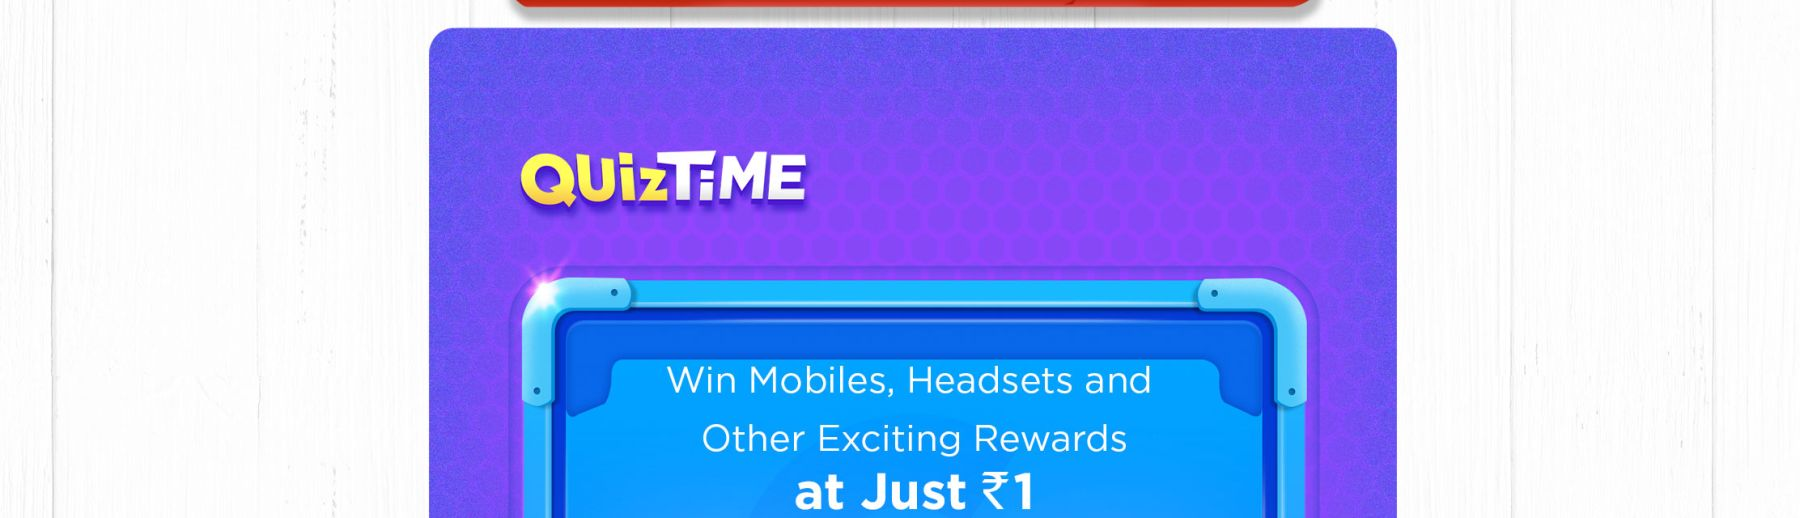 Tremendous Flipkart Game Zone Store Play Win Exciting Rewards Daily Home Interior And Landscaping Ologienasavecom